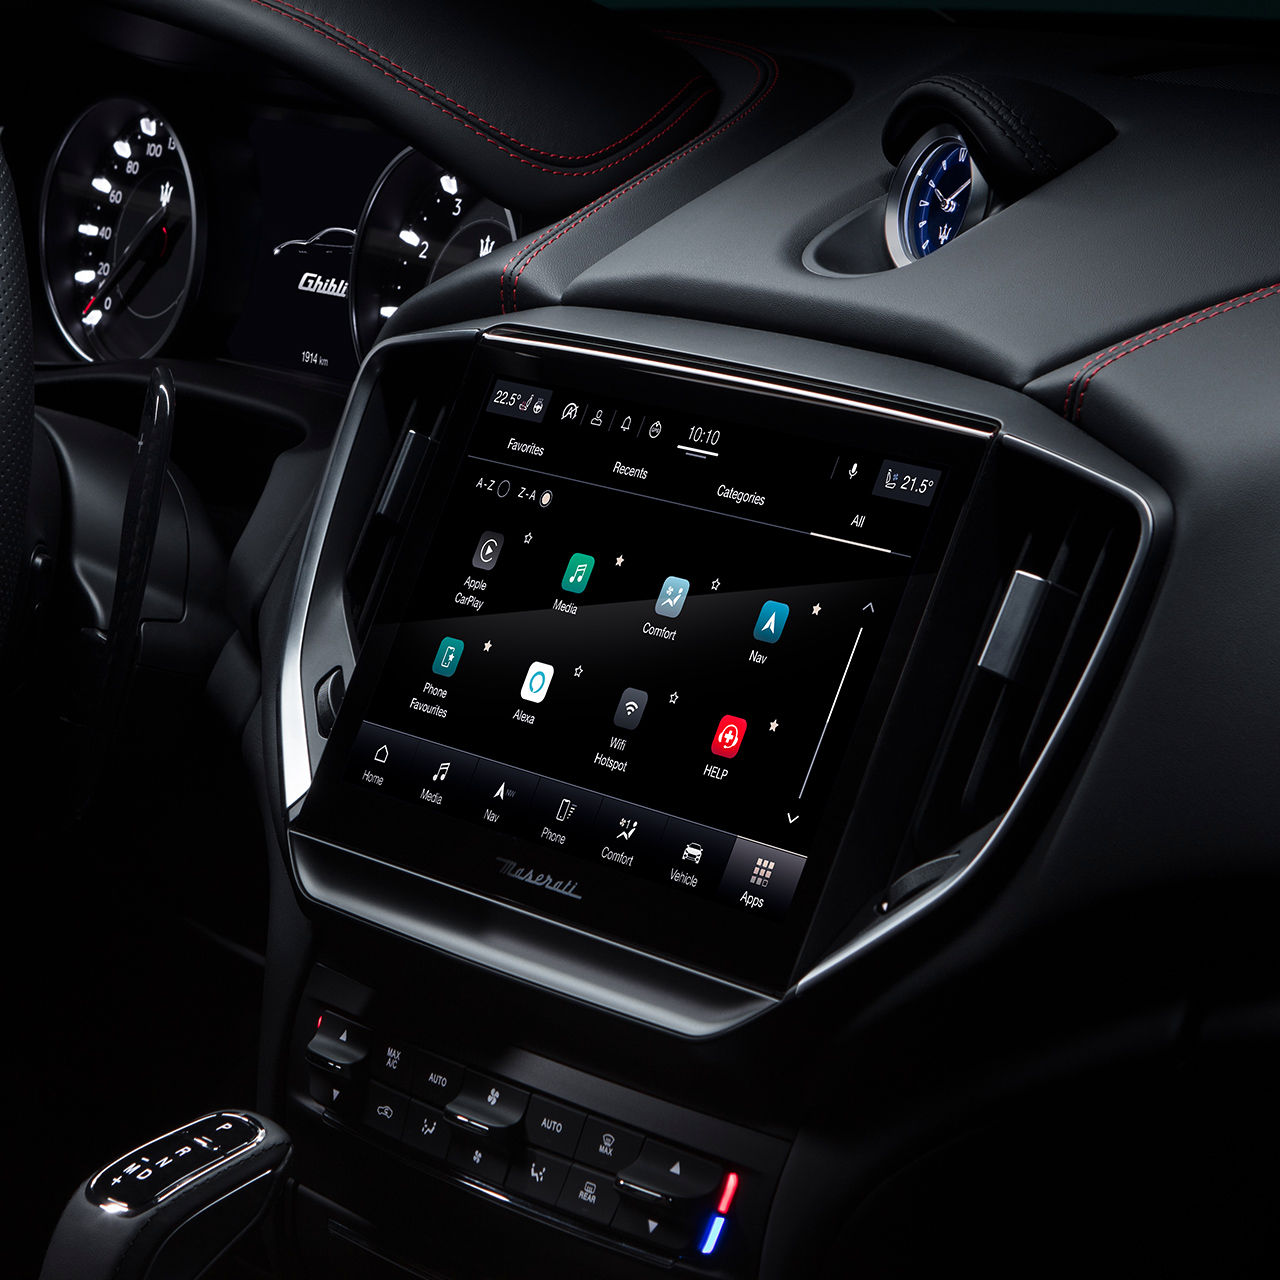 Maserati Ghibli - Maserati Connect - Display